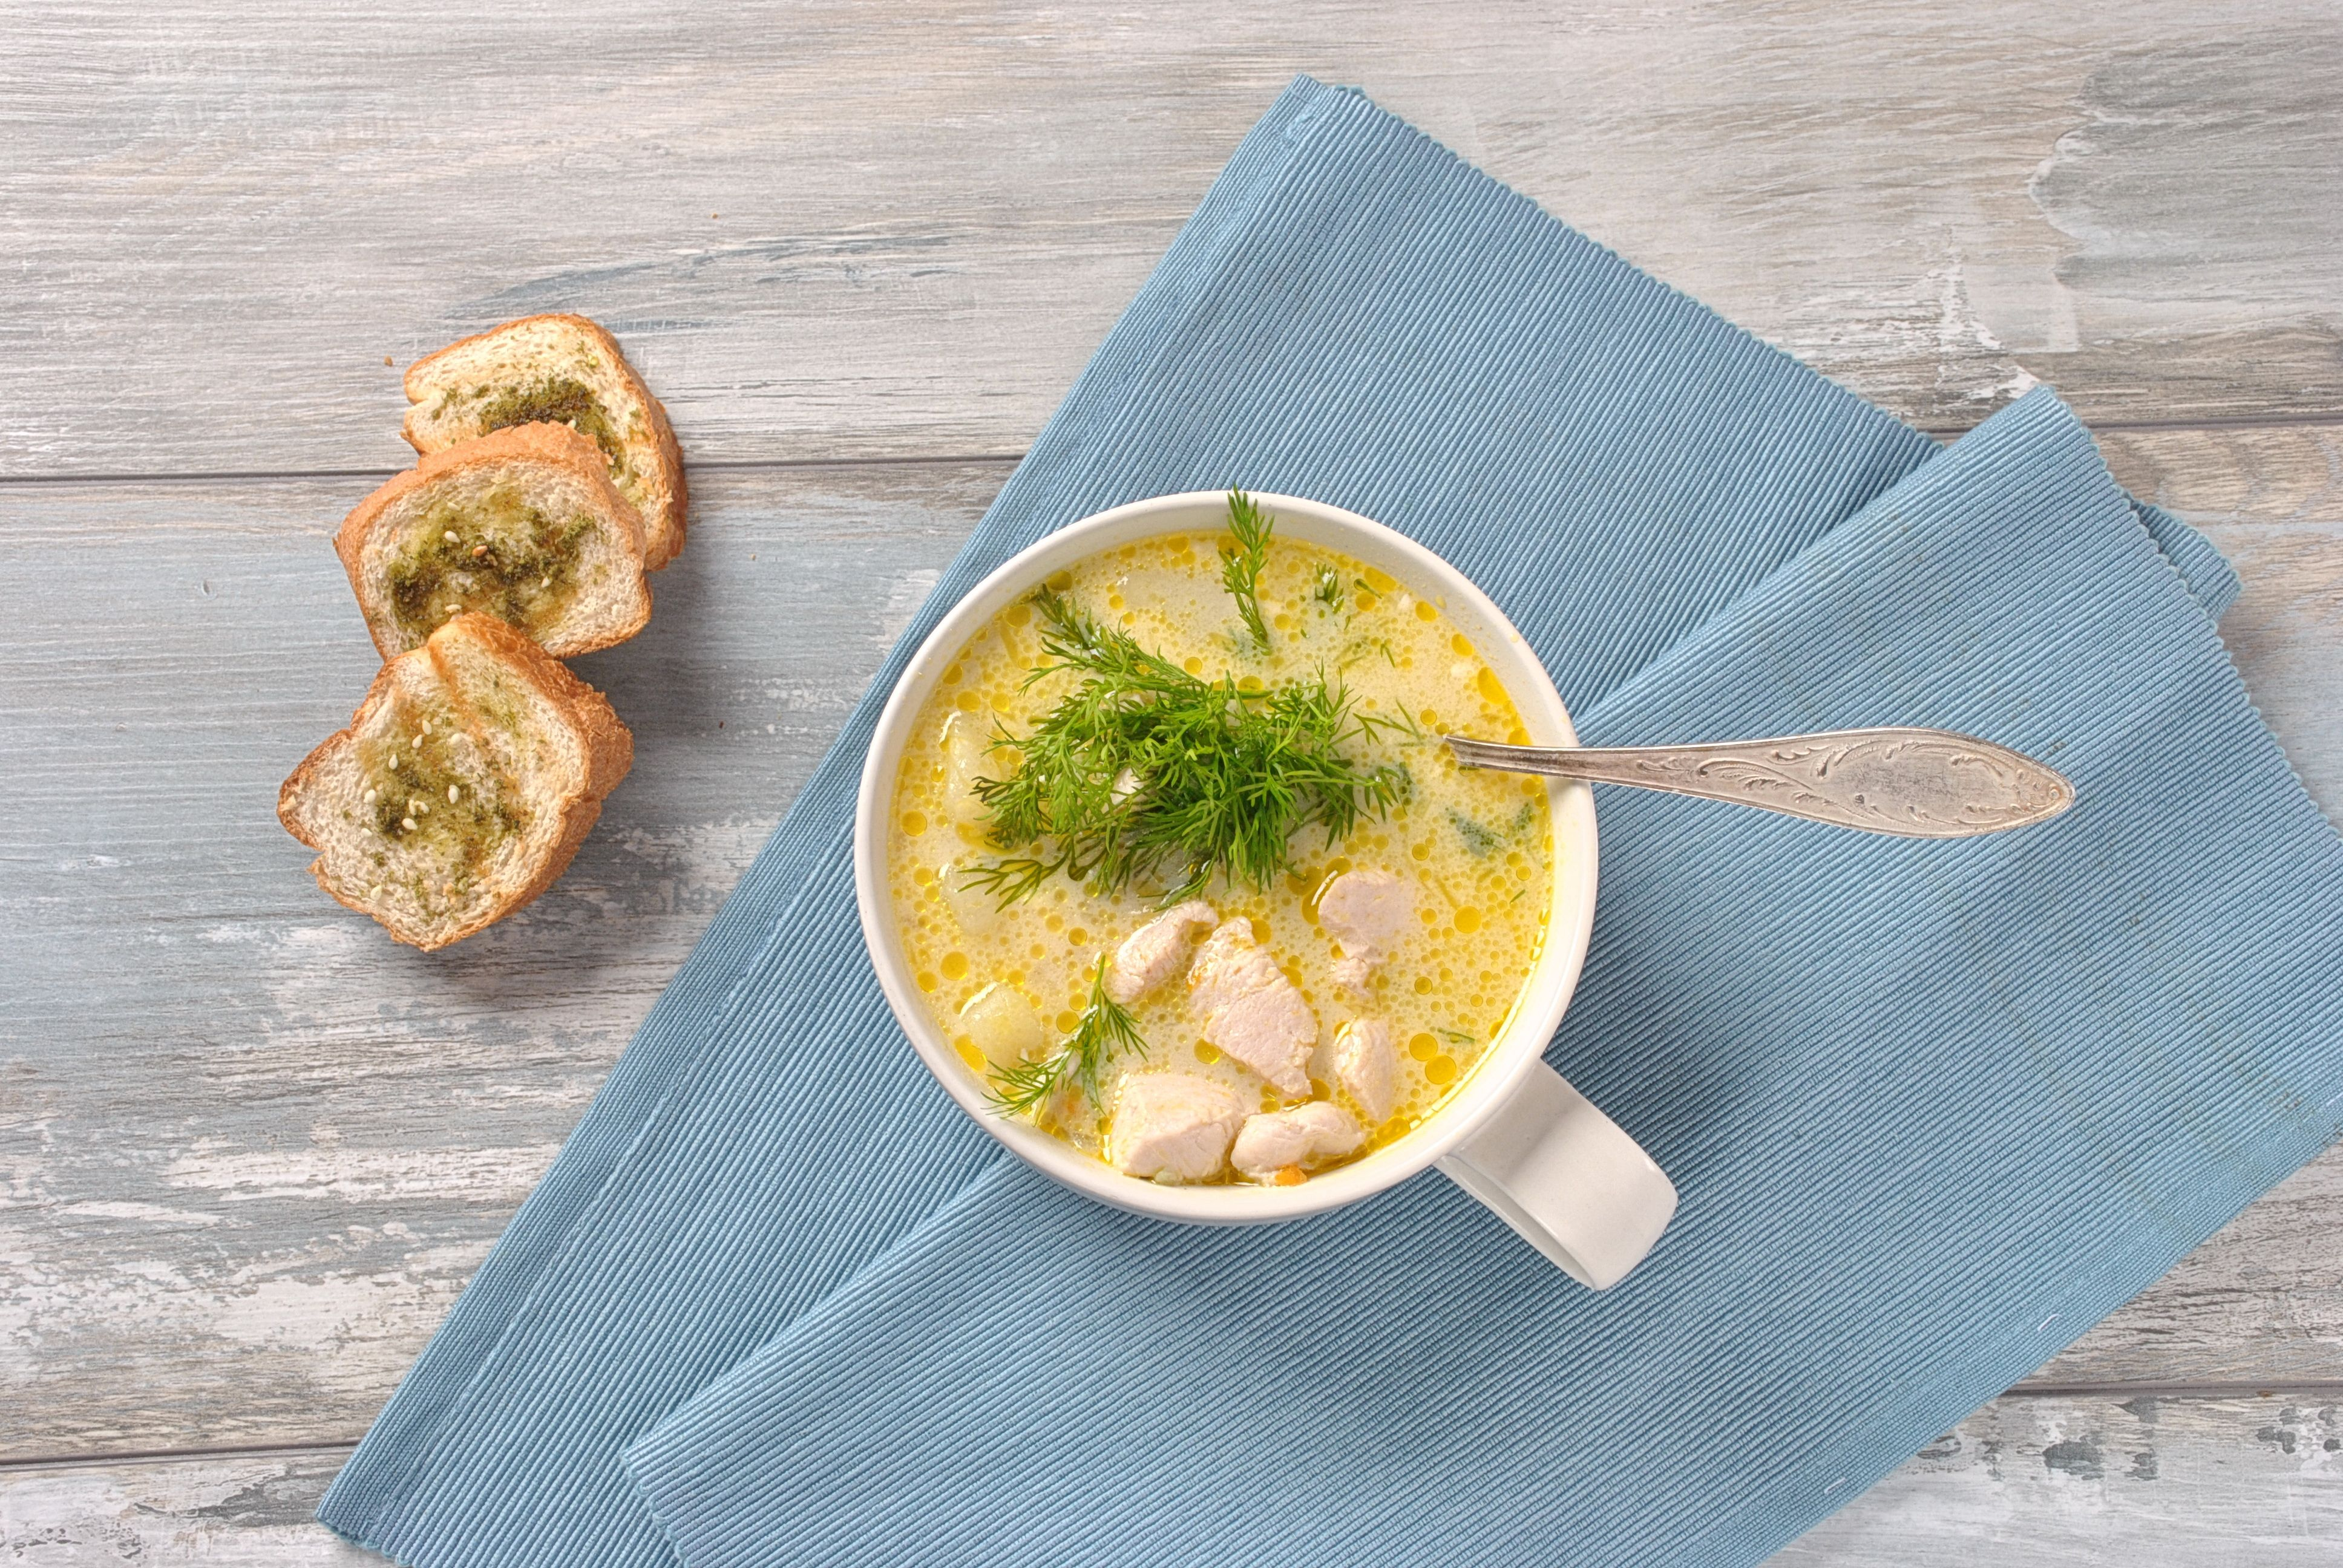 Stock vs. Broth: Nutritionists Explain The Difference In Nutrients And Health Benefits